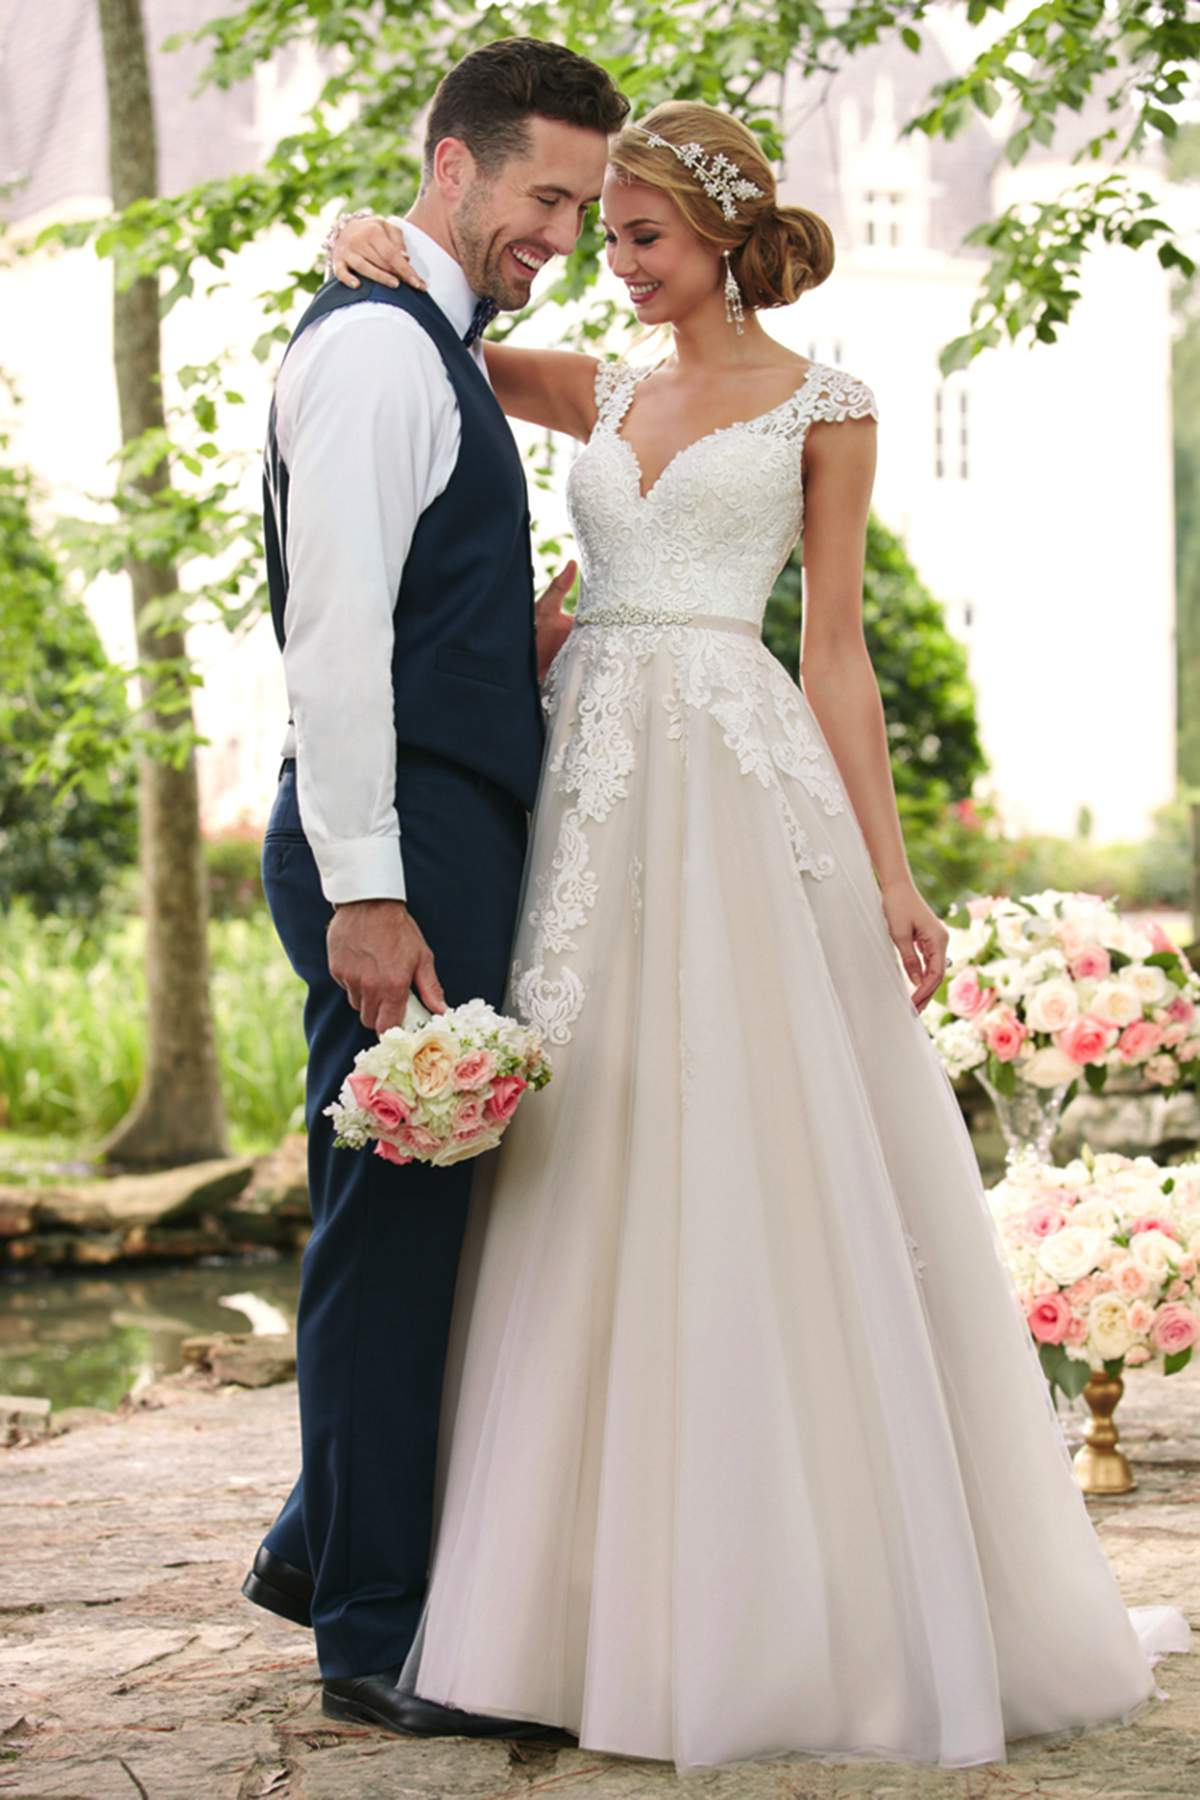 Style 20 by Stella York   Find Your Dream Dress